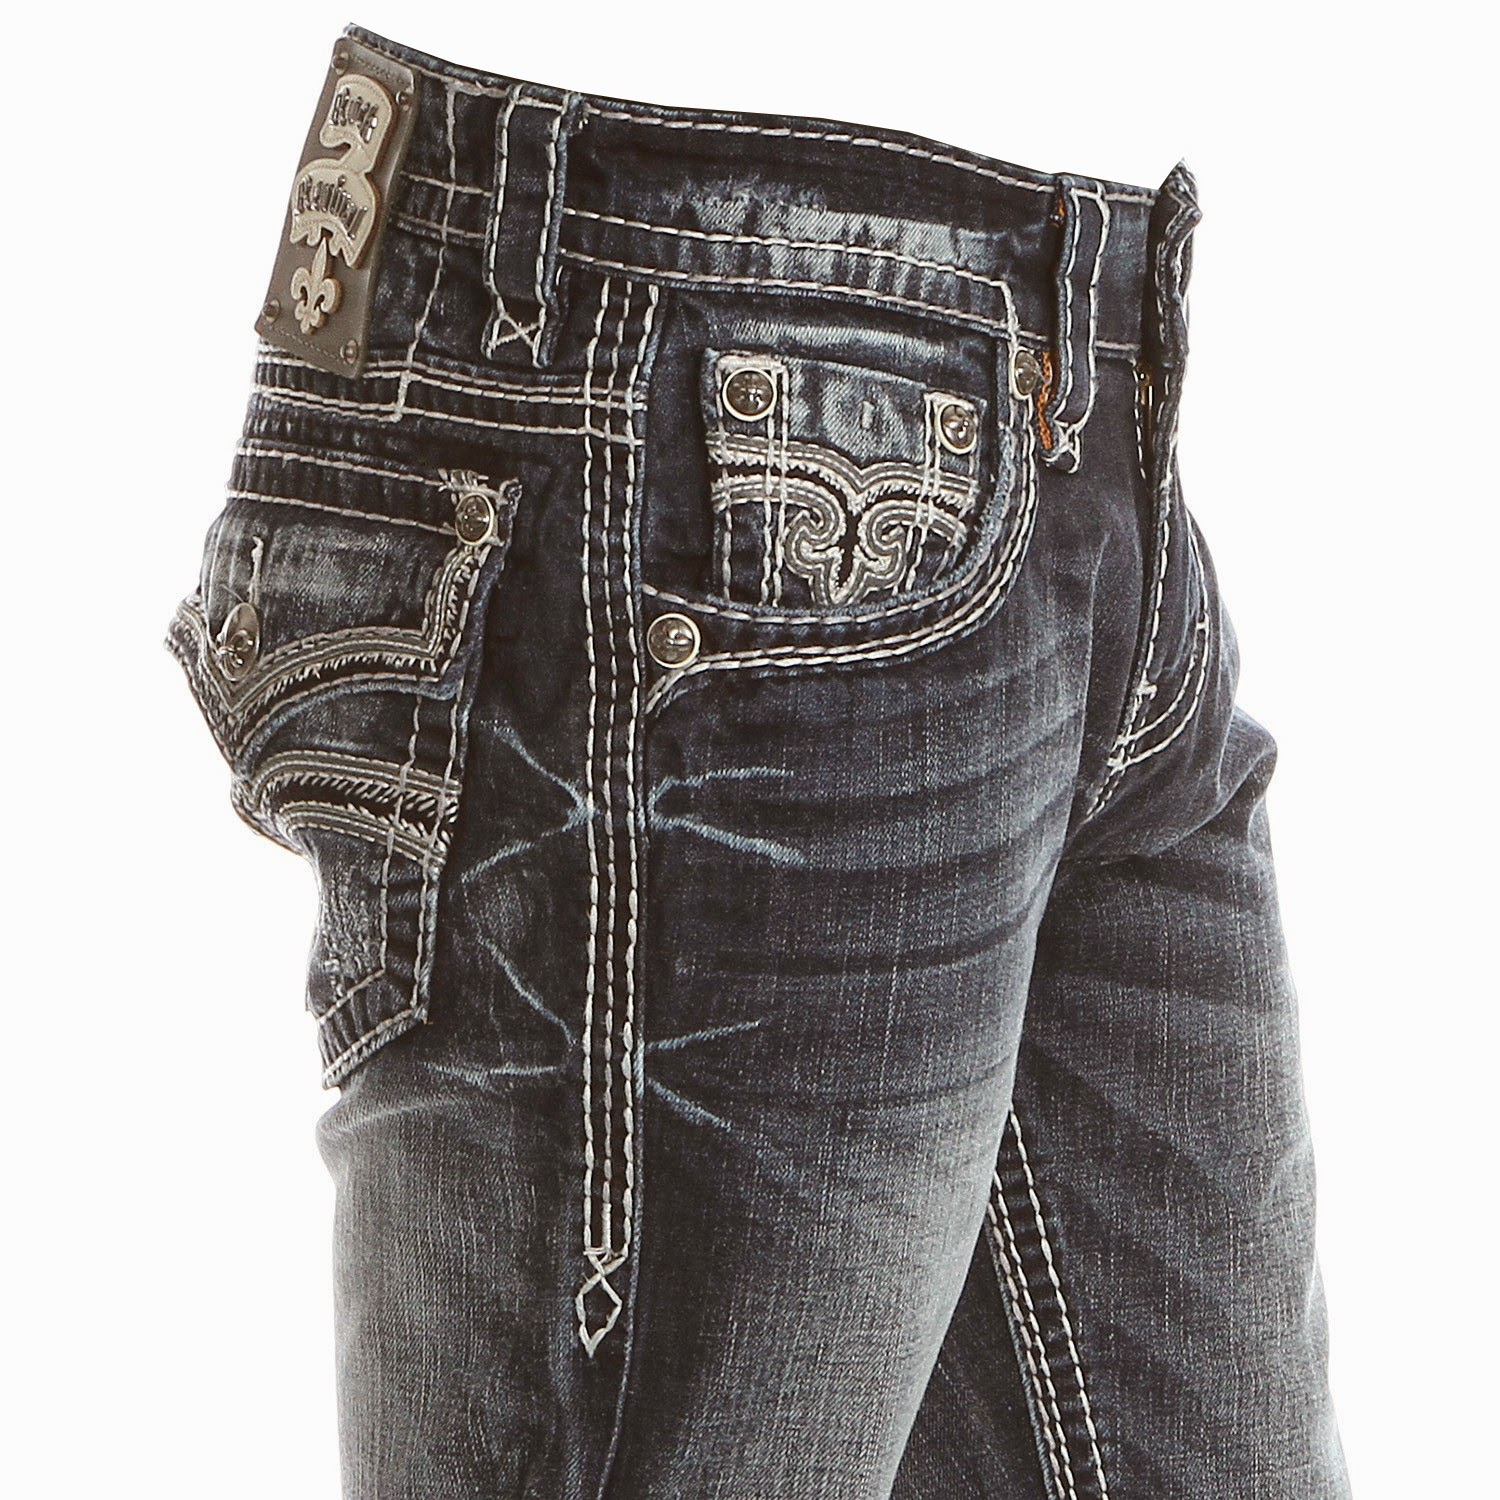 Miss Me Jeans. Miss Me jeans and Cavender's always are the perfect fit! Shop Cavender's Miss Me jean outlet and discover great prices on a full range of Miss Me jeans .